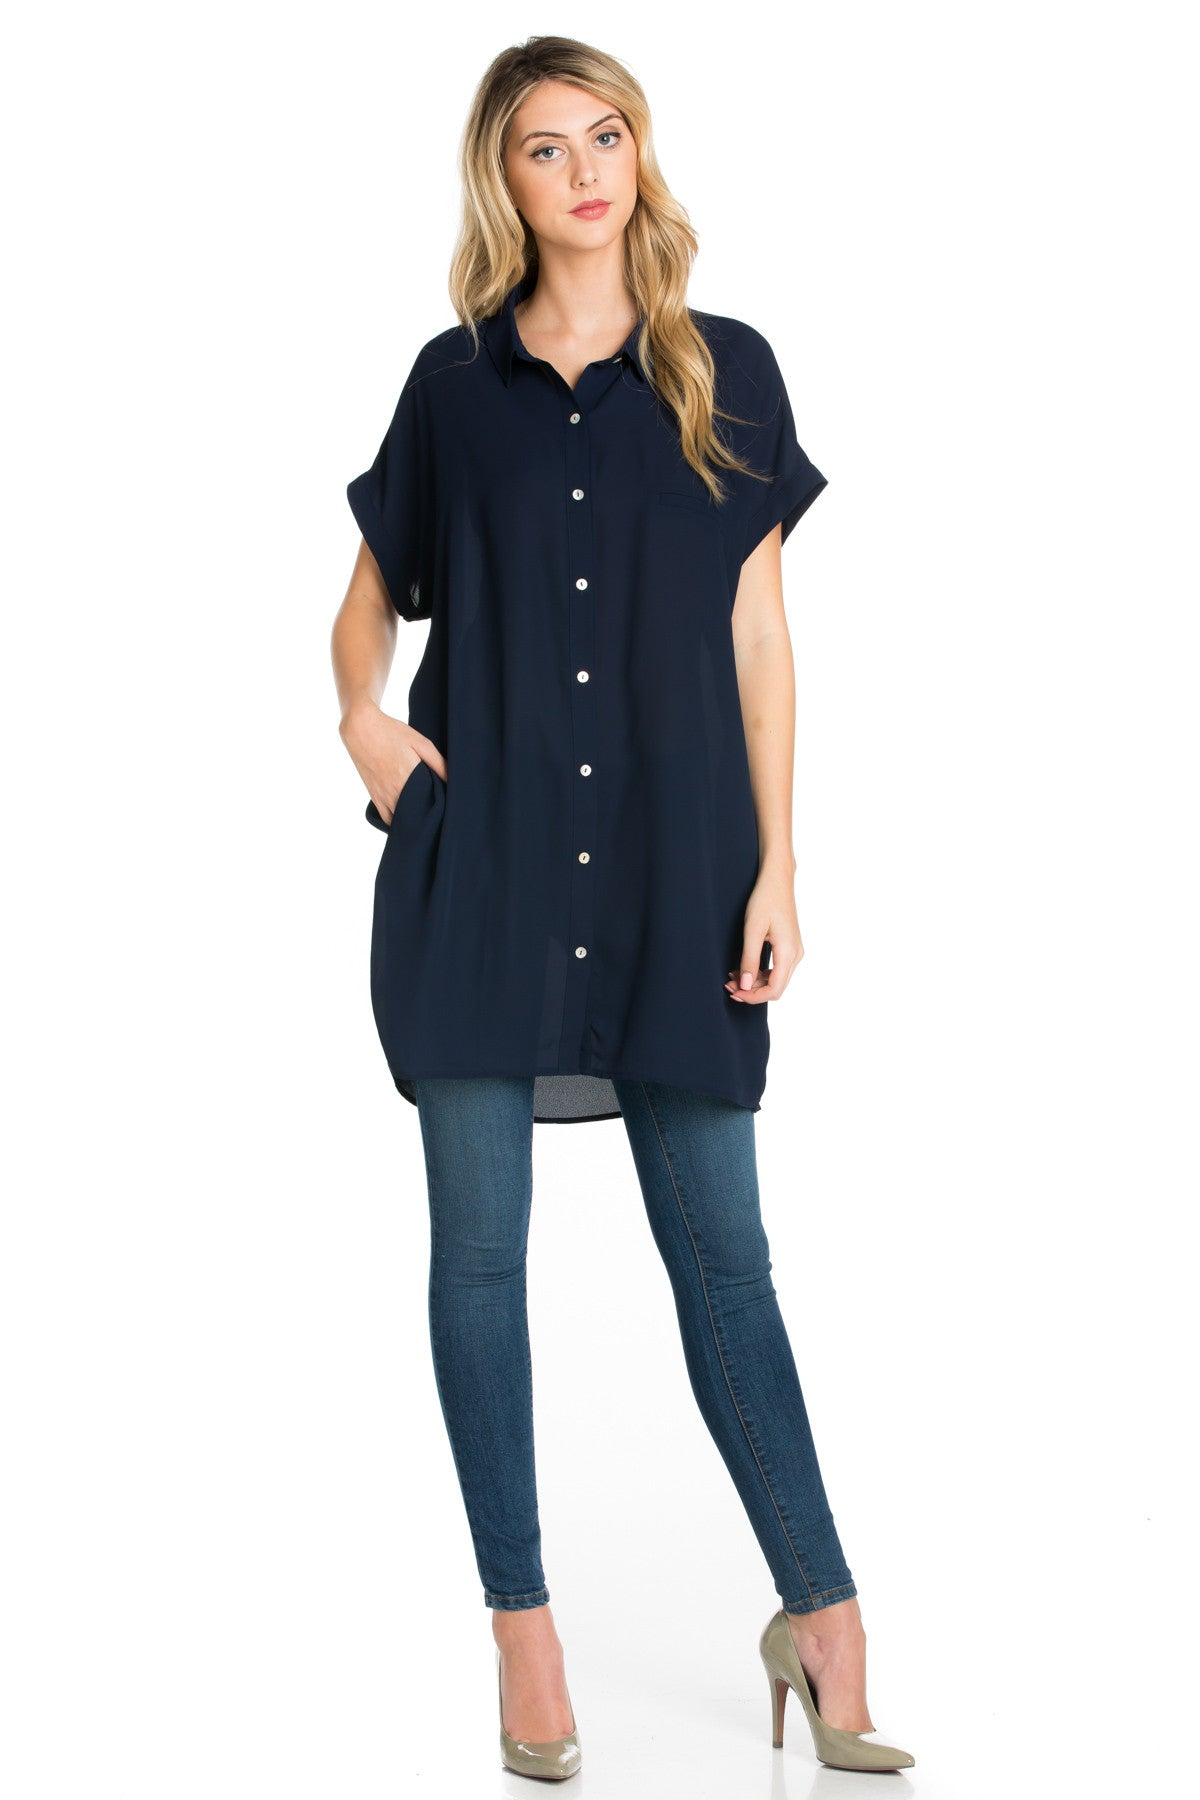 Short Sleeve Longline Button Down Chiffon Top in Midnight Blue - Tops - My Yuccie - 2